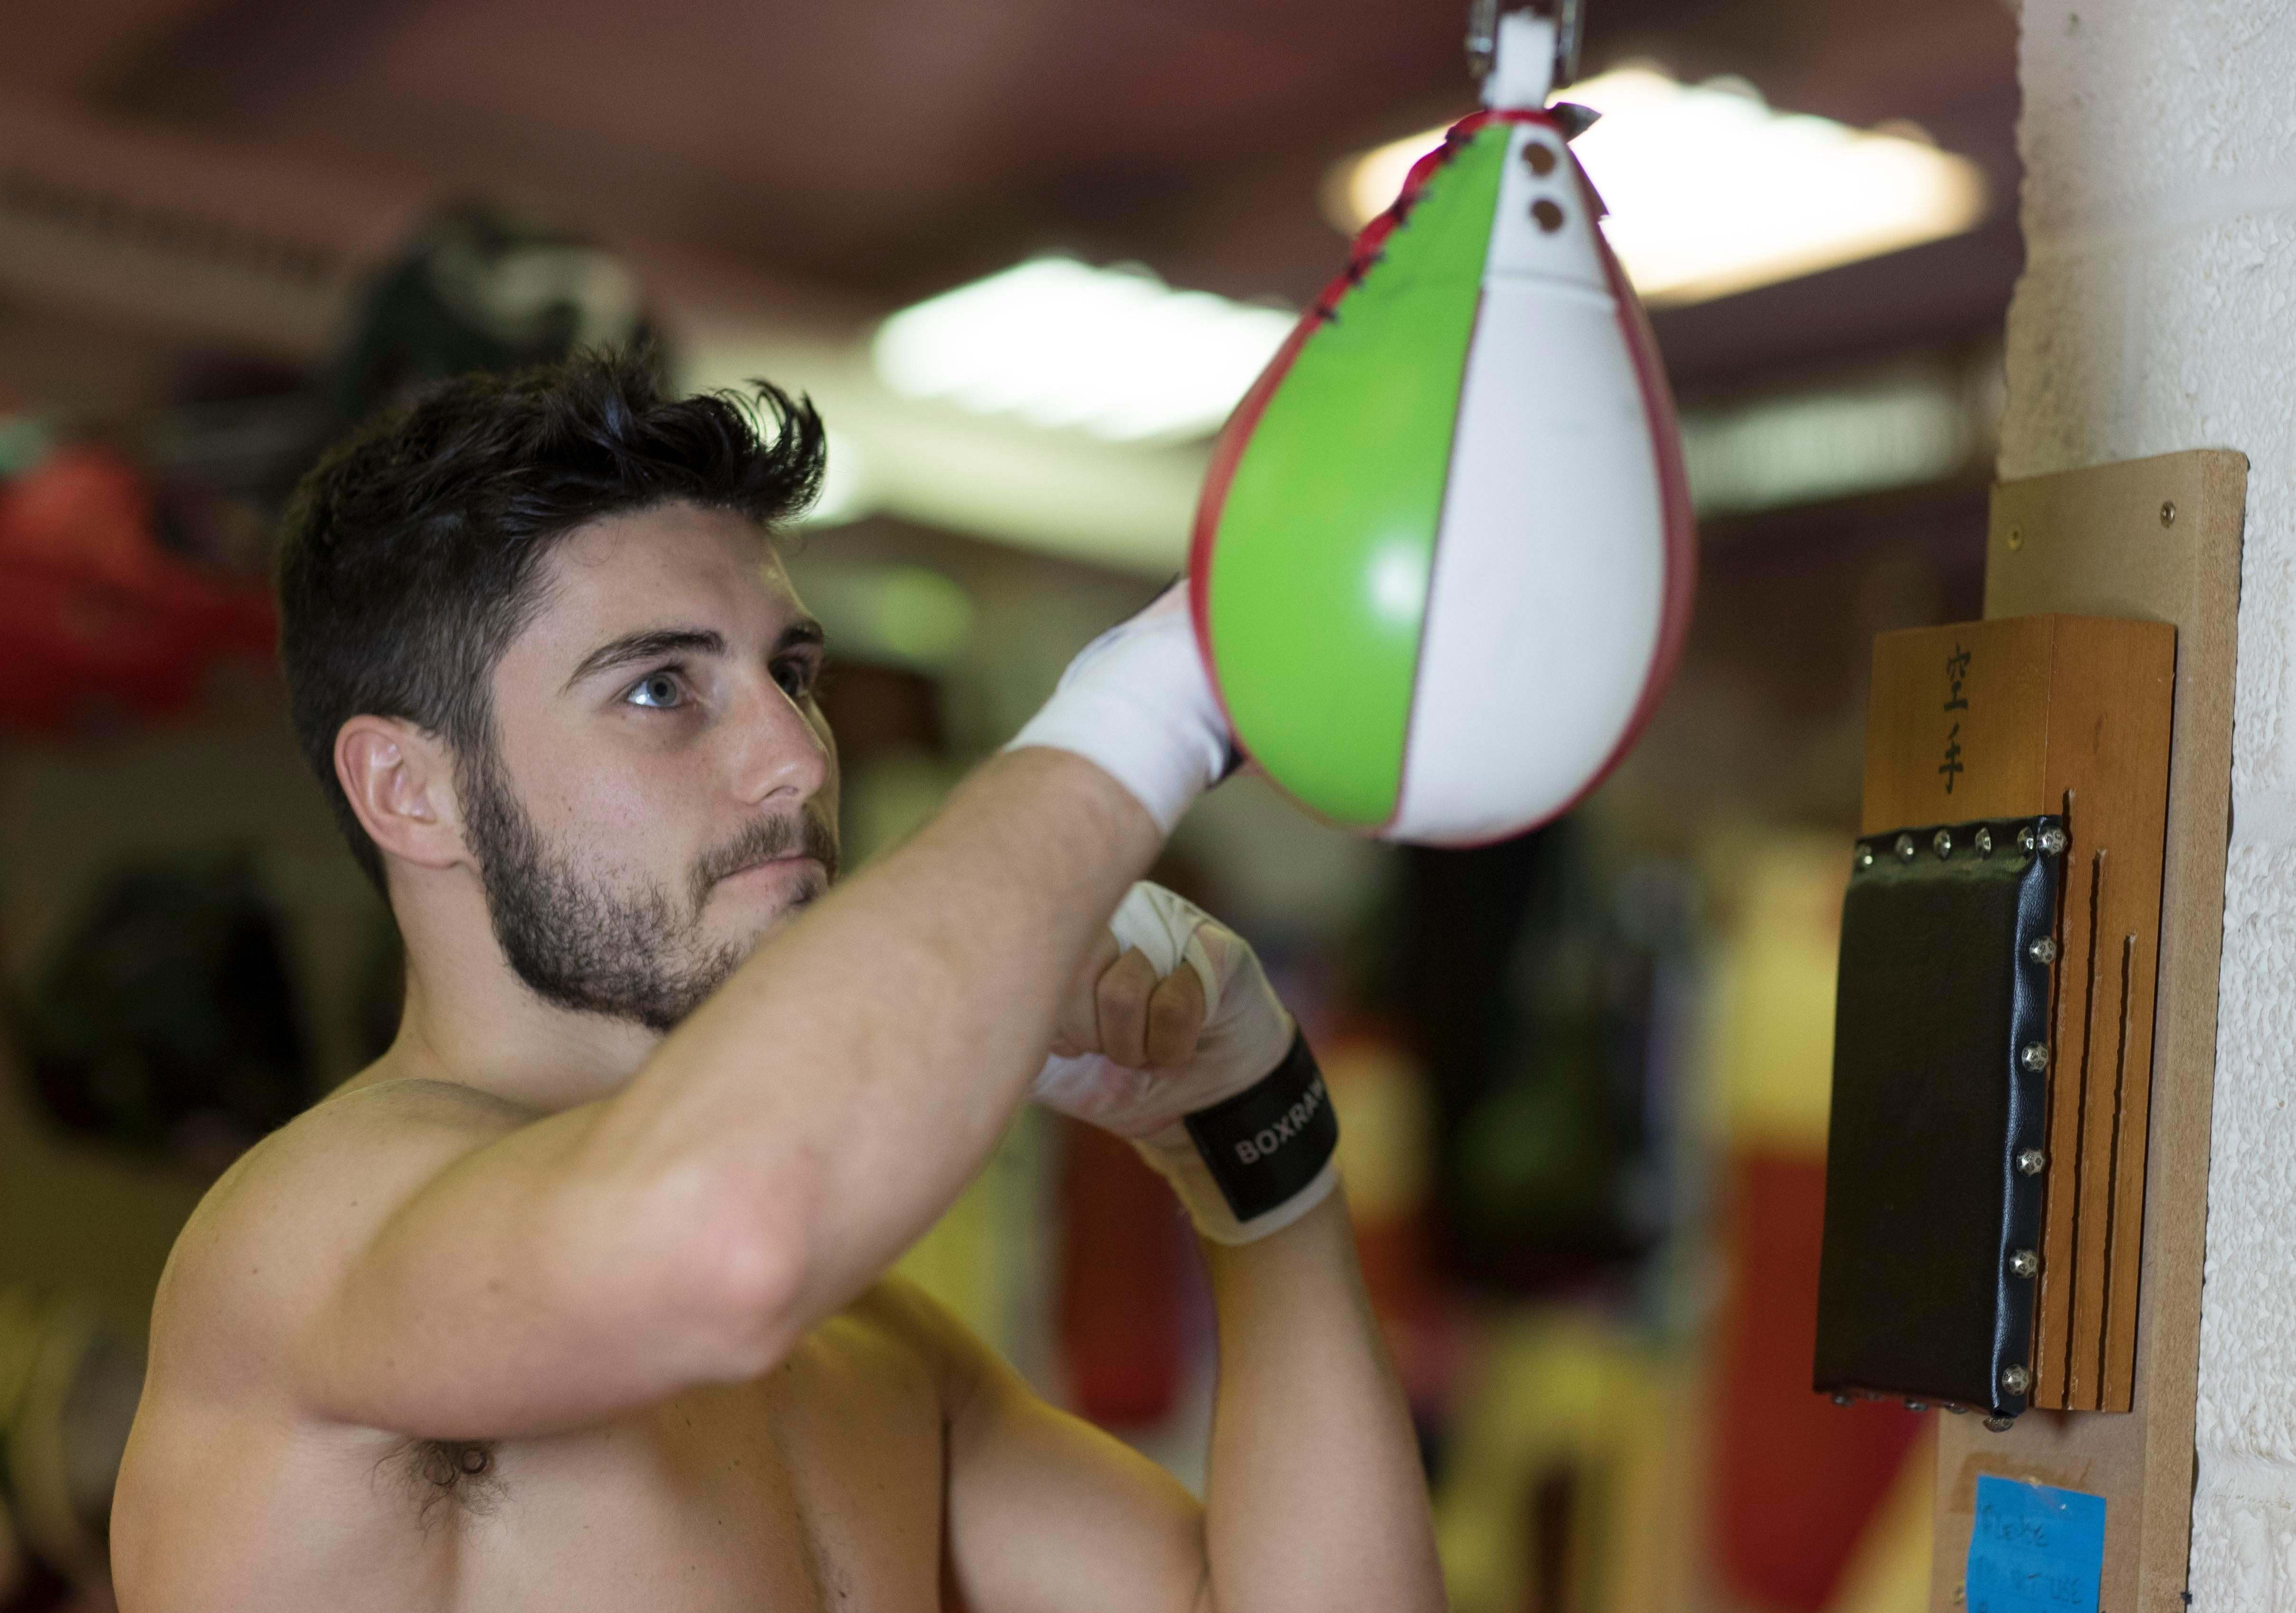 With a young son to feed, Josh Kelly is hungrier than ever to succeed